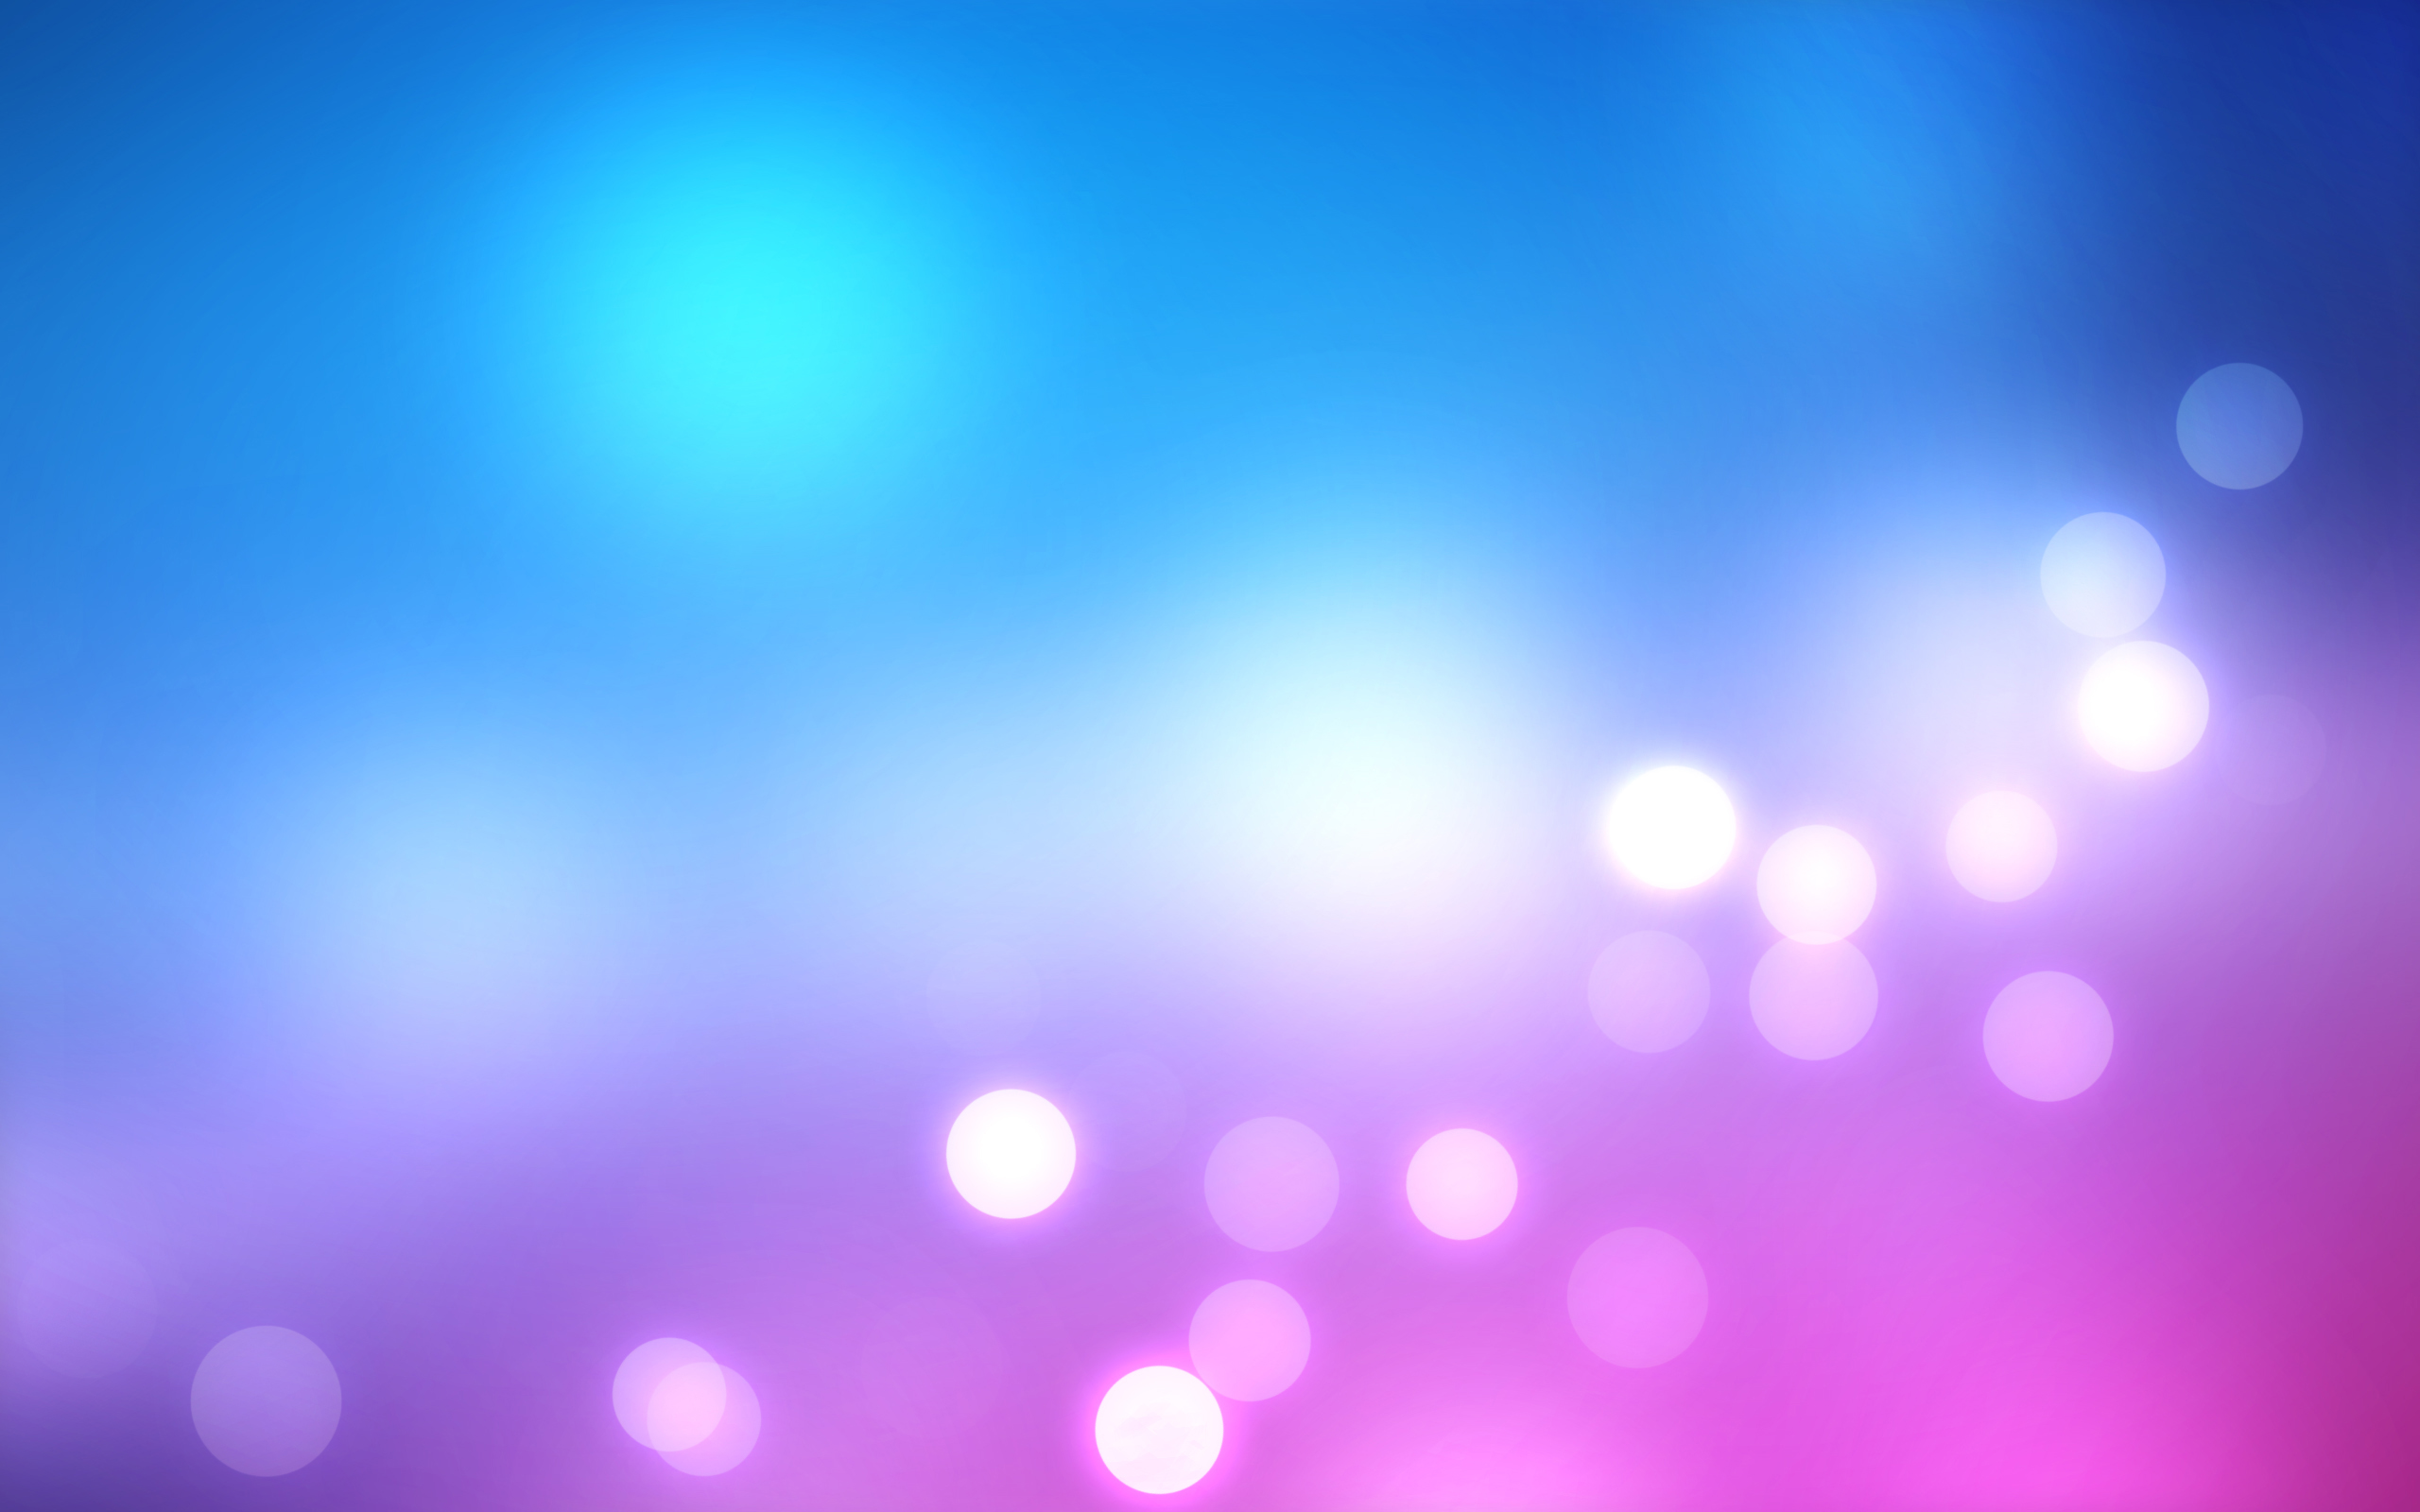 Colorful Abstract HD Backgrounds 6942905 Present Hd Basic 8 21743 2560x1600